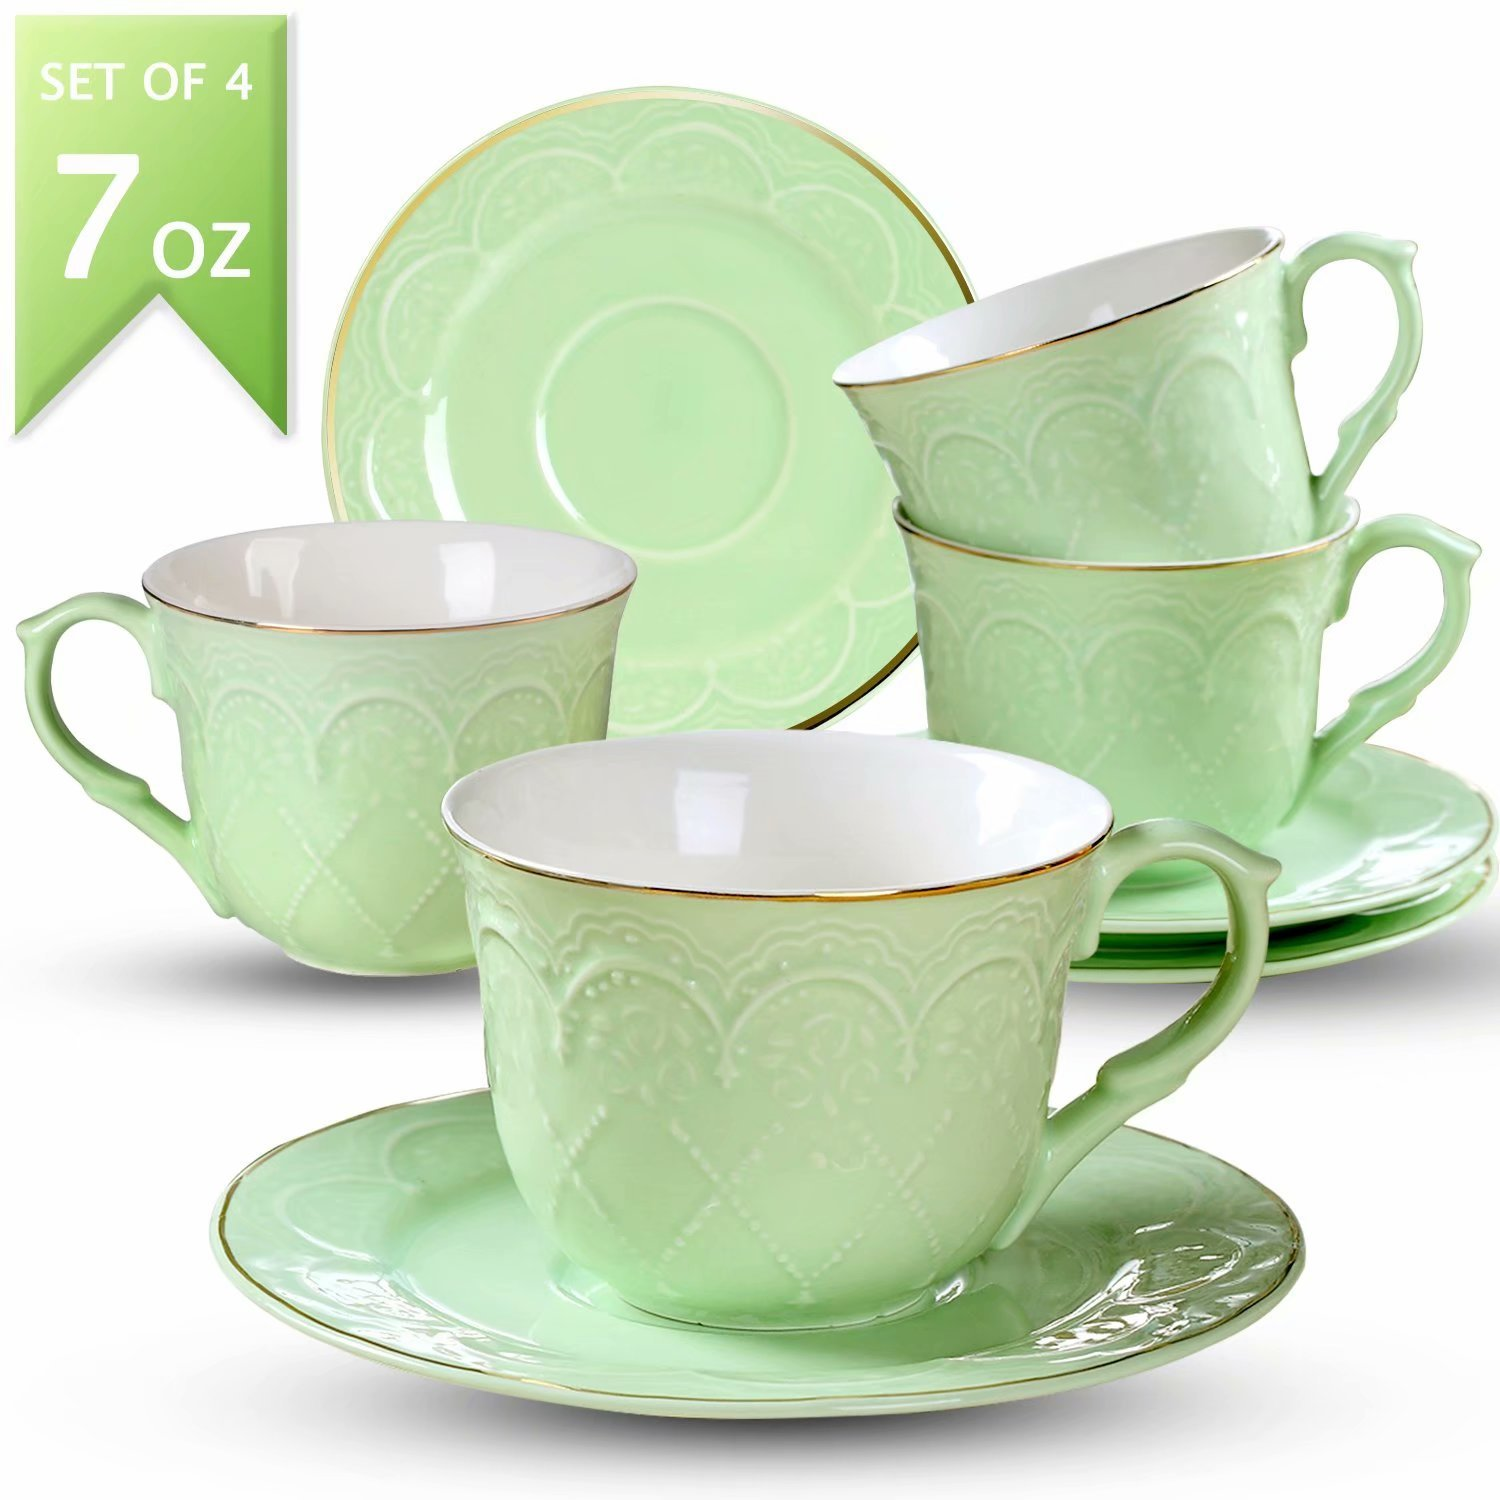 Guangyang Coffee Cups Saucers Set of 4-7OZ New Bone China Embossed Floral Gold Edge Coffee Mugs Set Mocha Latte Cappuccino Macchiato,Green